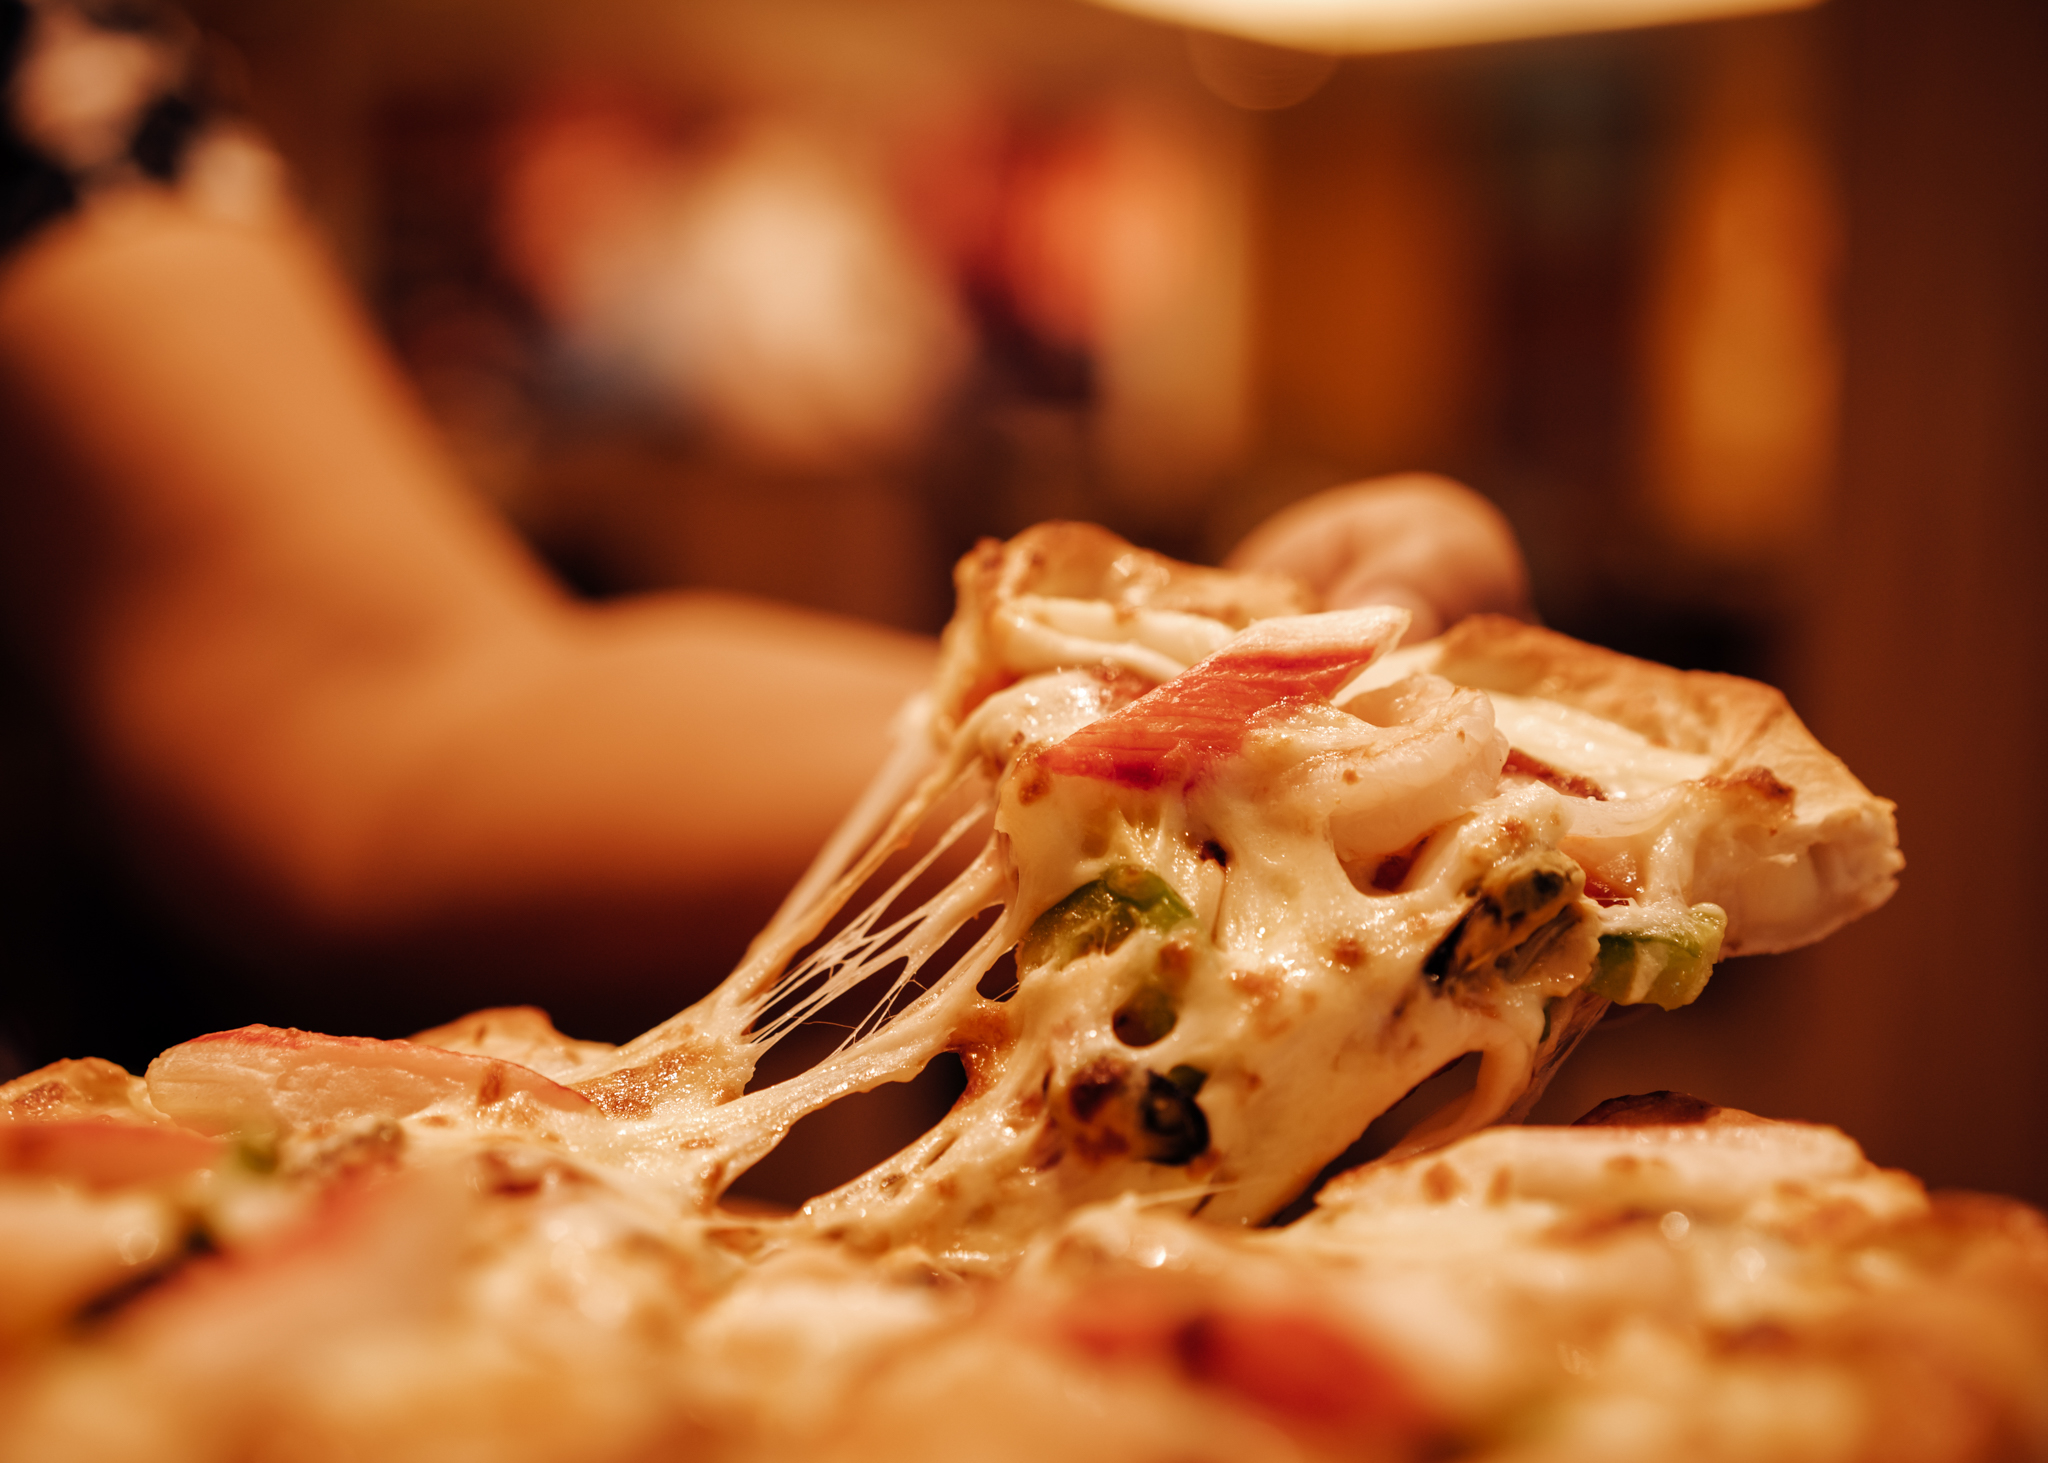 Slice of hot pizza cheese lunch or dinner crust seafood meat top